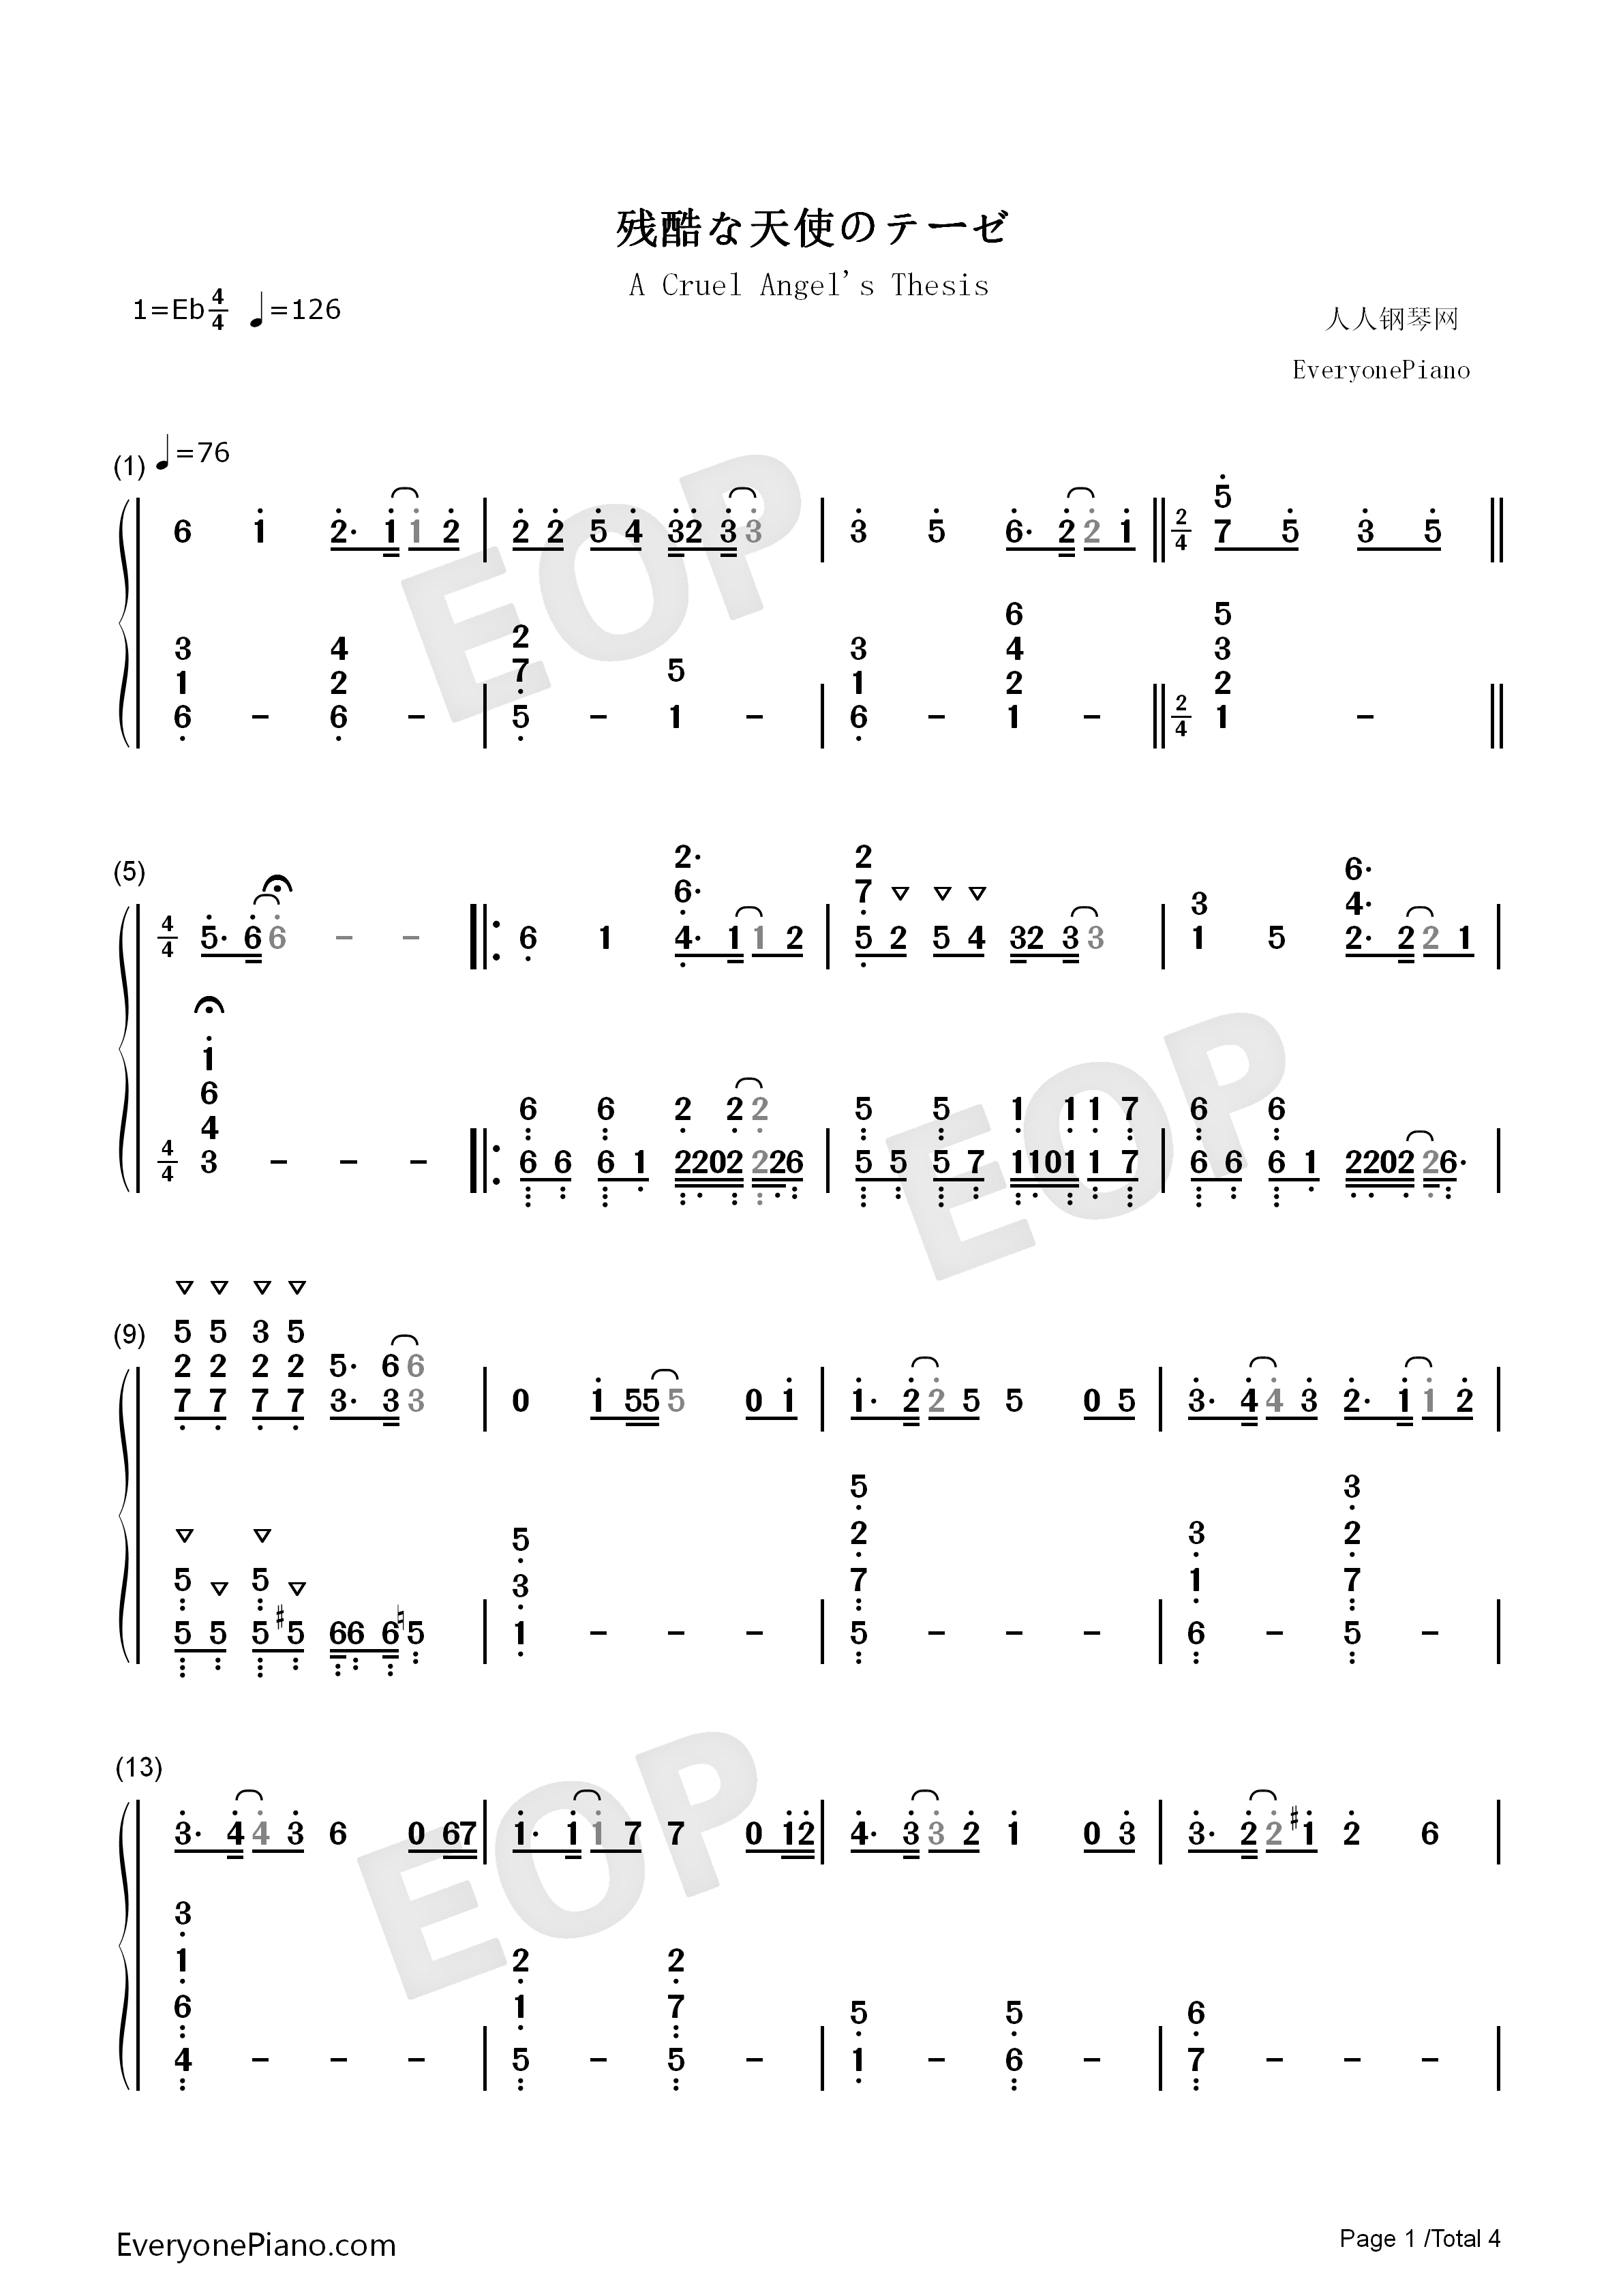 neon genesis evangelion cruel angels thesis piano sheet music